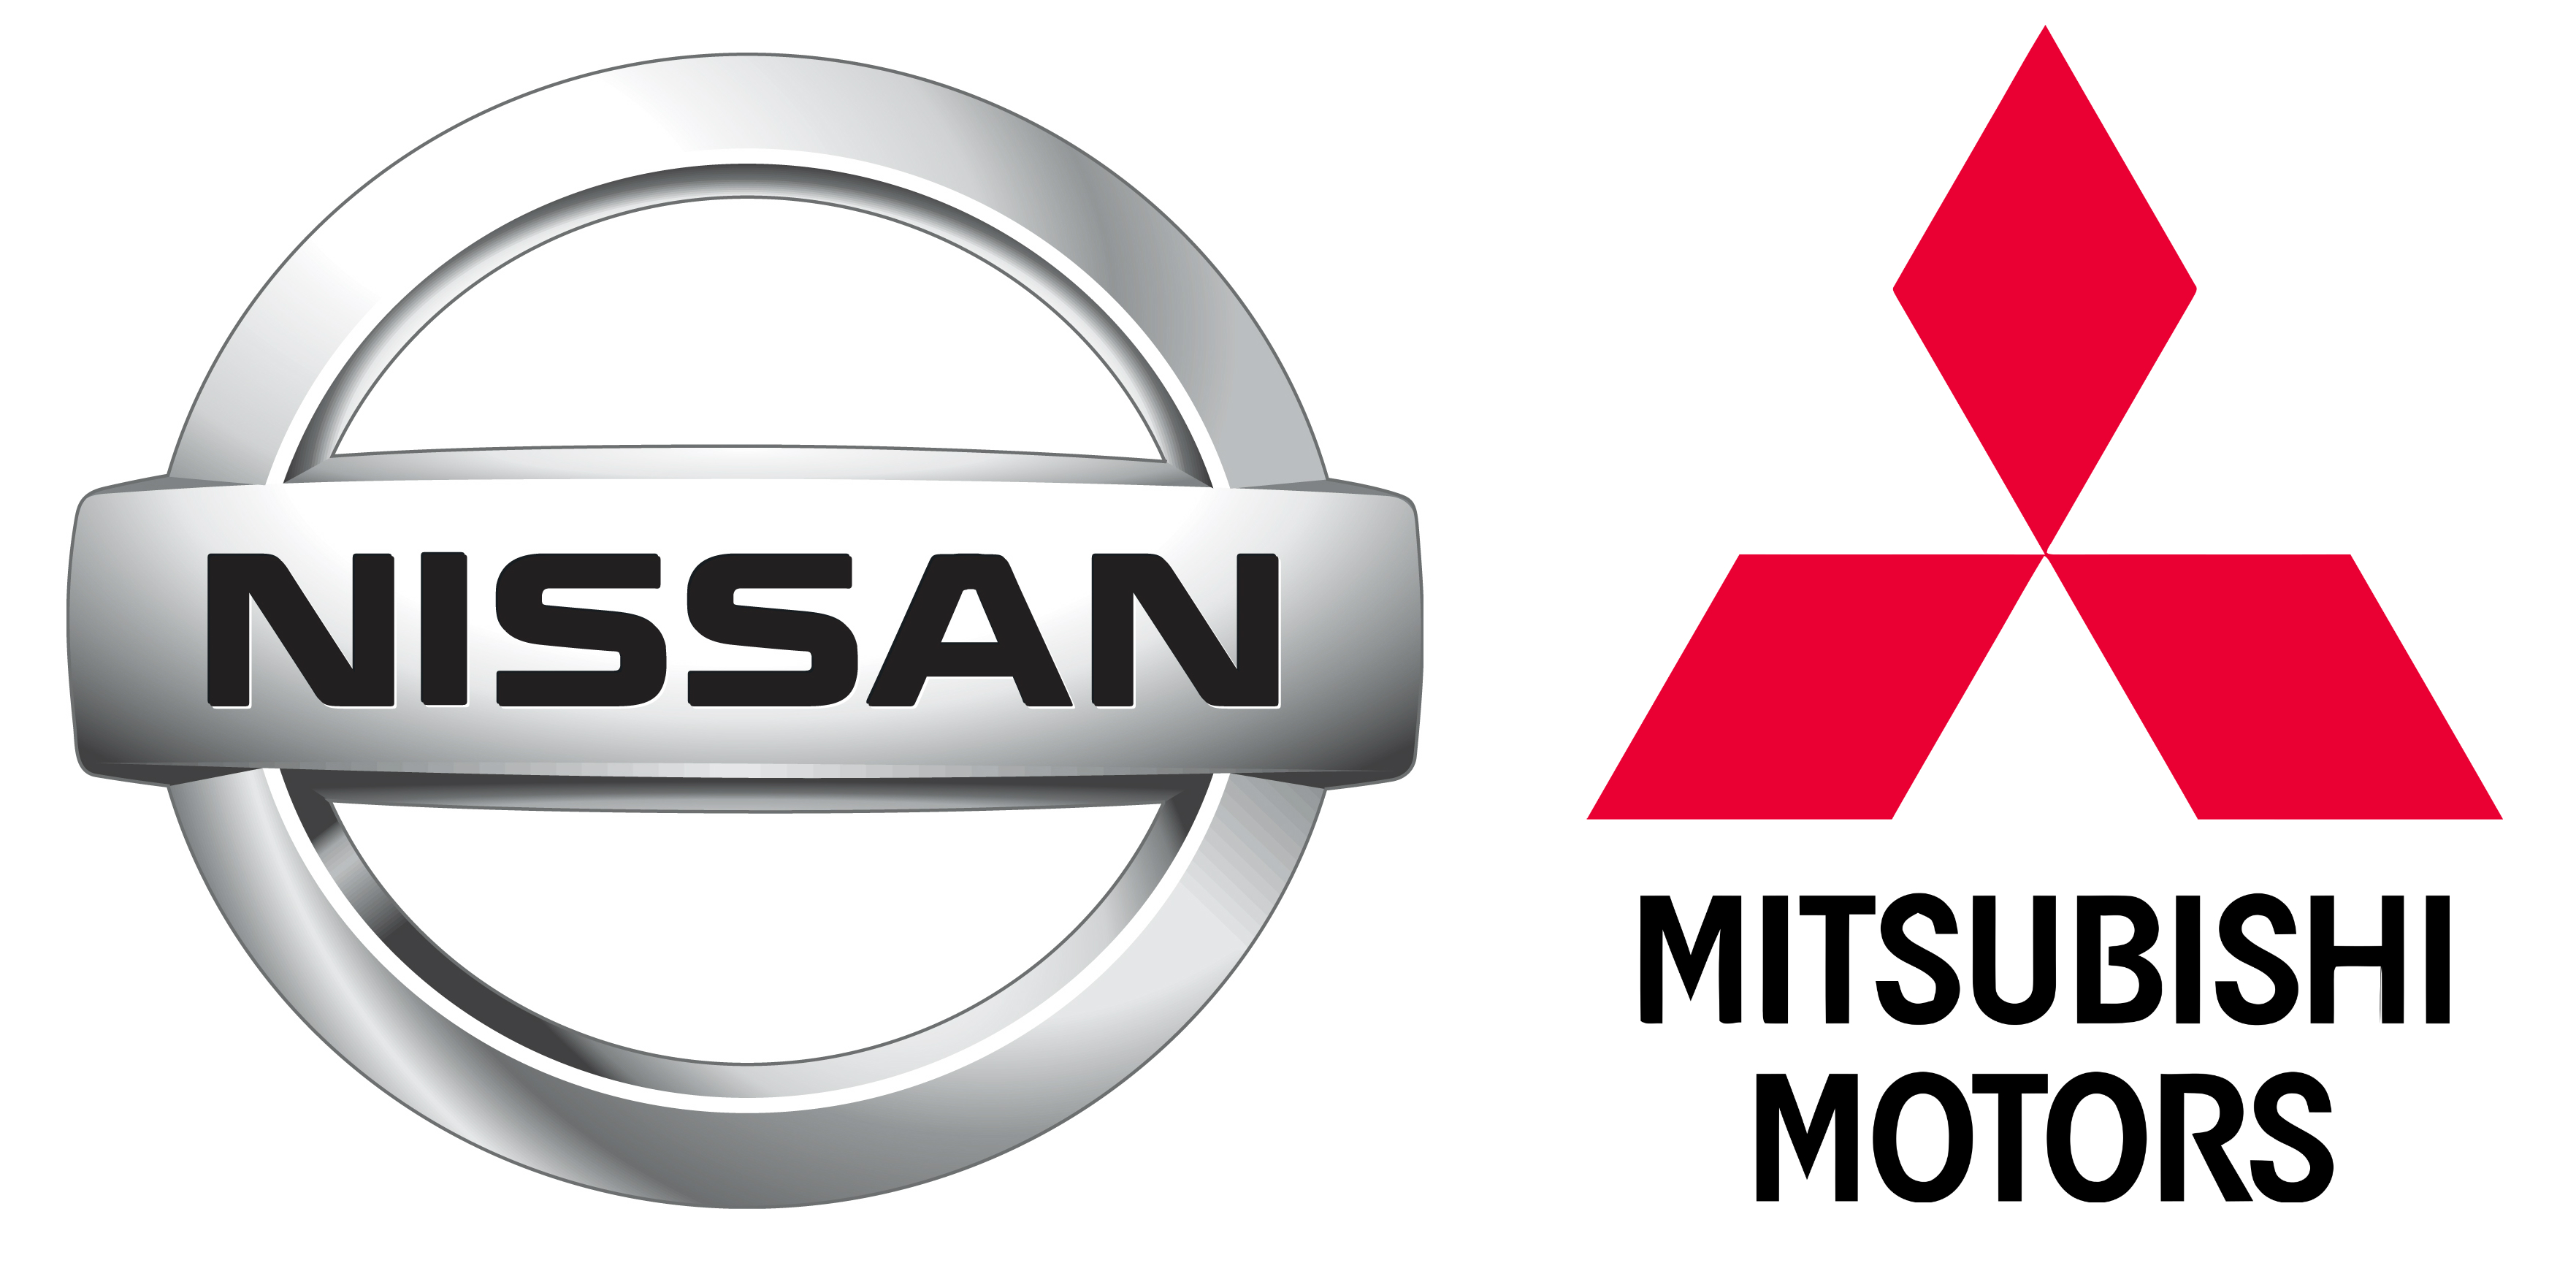 nissan motors 2 essay Welcome to the official nissan global youtube channel the nissan worldwide channel is our virtual showroom, showcasing our newest models, heritage vehicles.